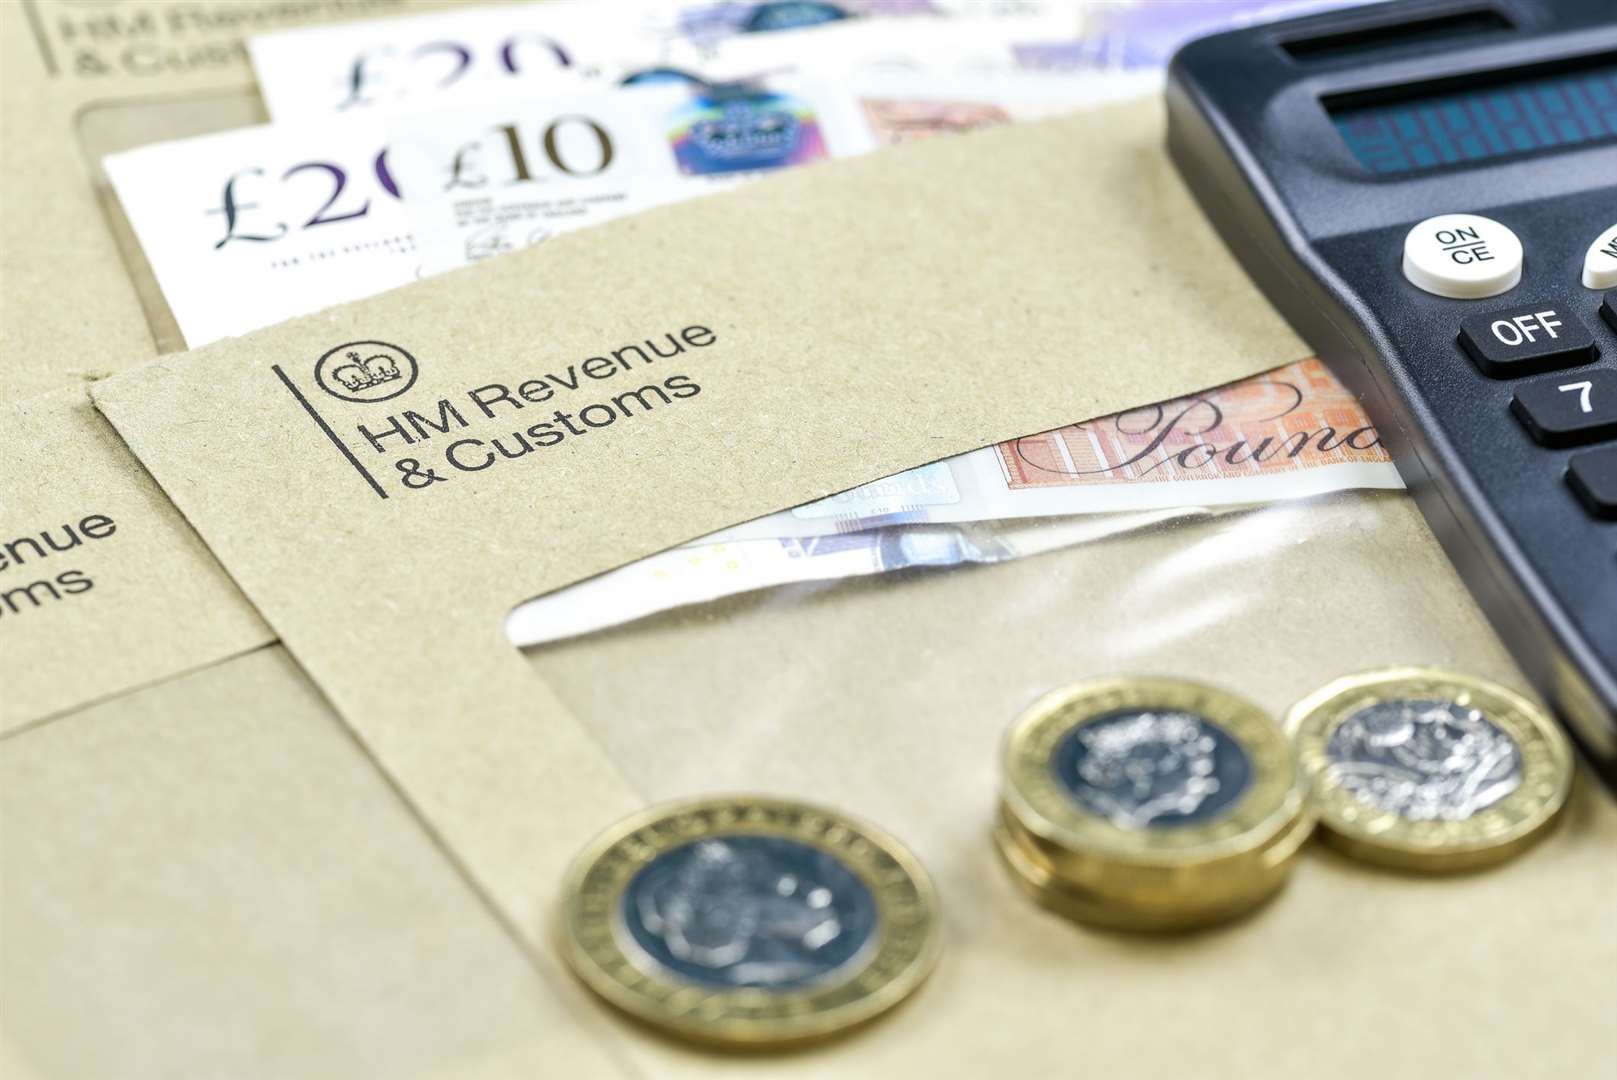 If people don't renew their claims by July 31 they risk payments being stopped, says HMRC